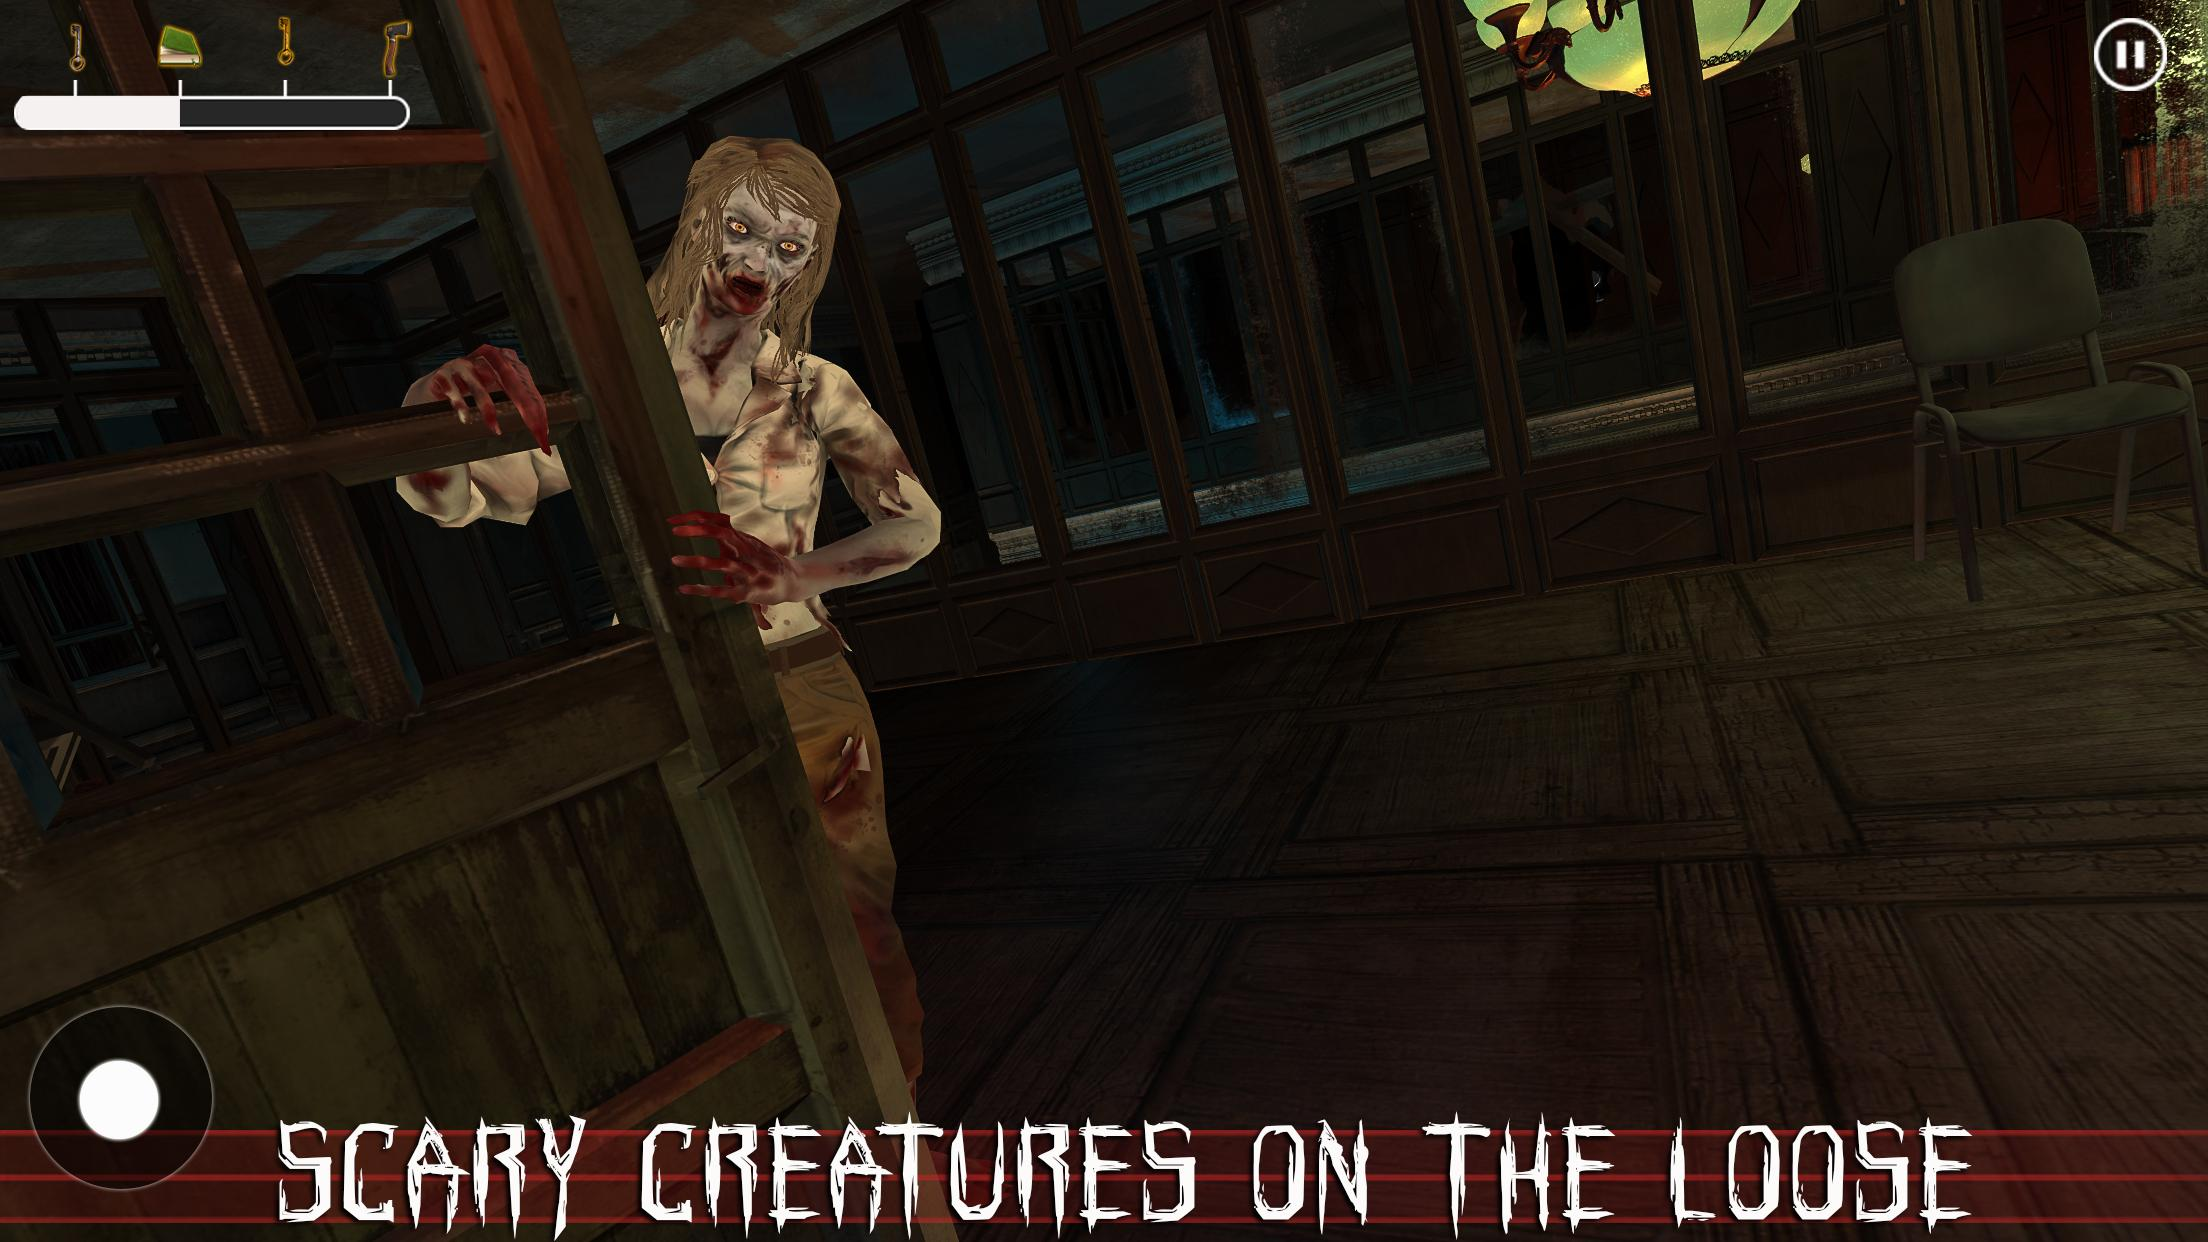 Horror Games For Roblox 2020 Scary Granny House The Horror Game 2020 For Android Apk Download